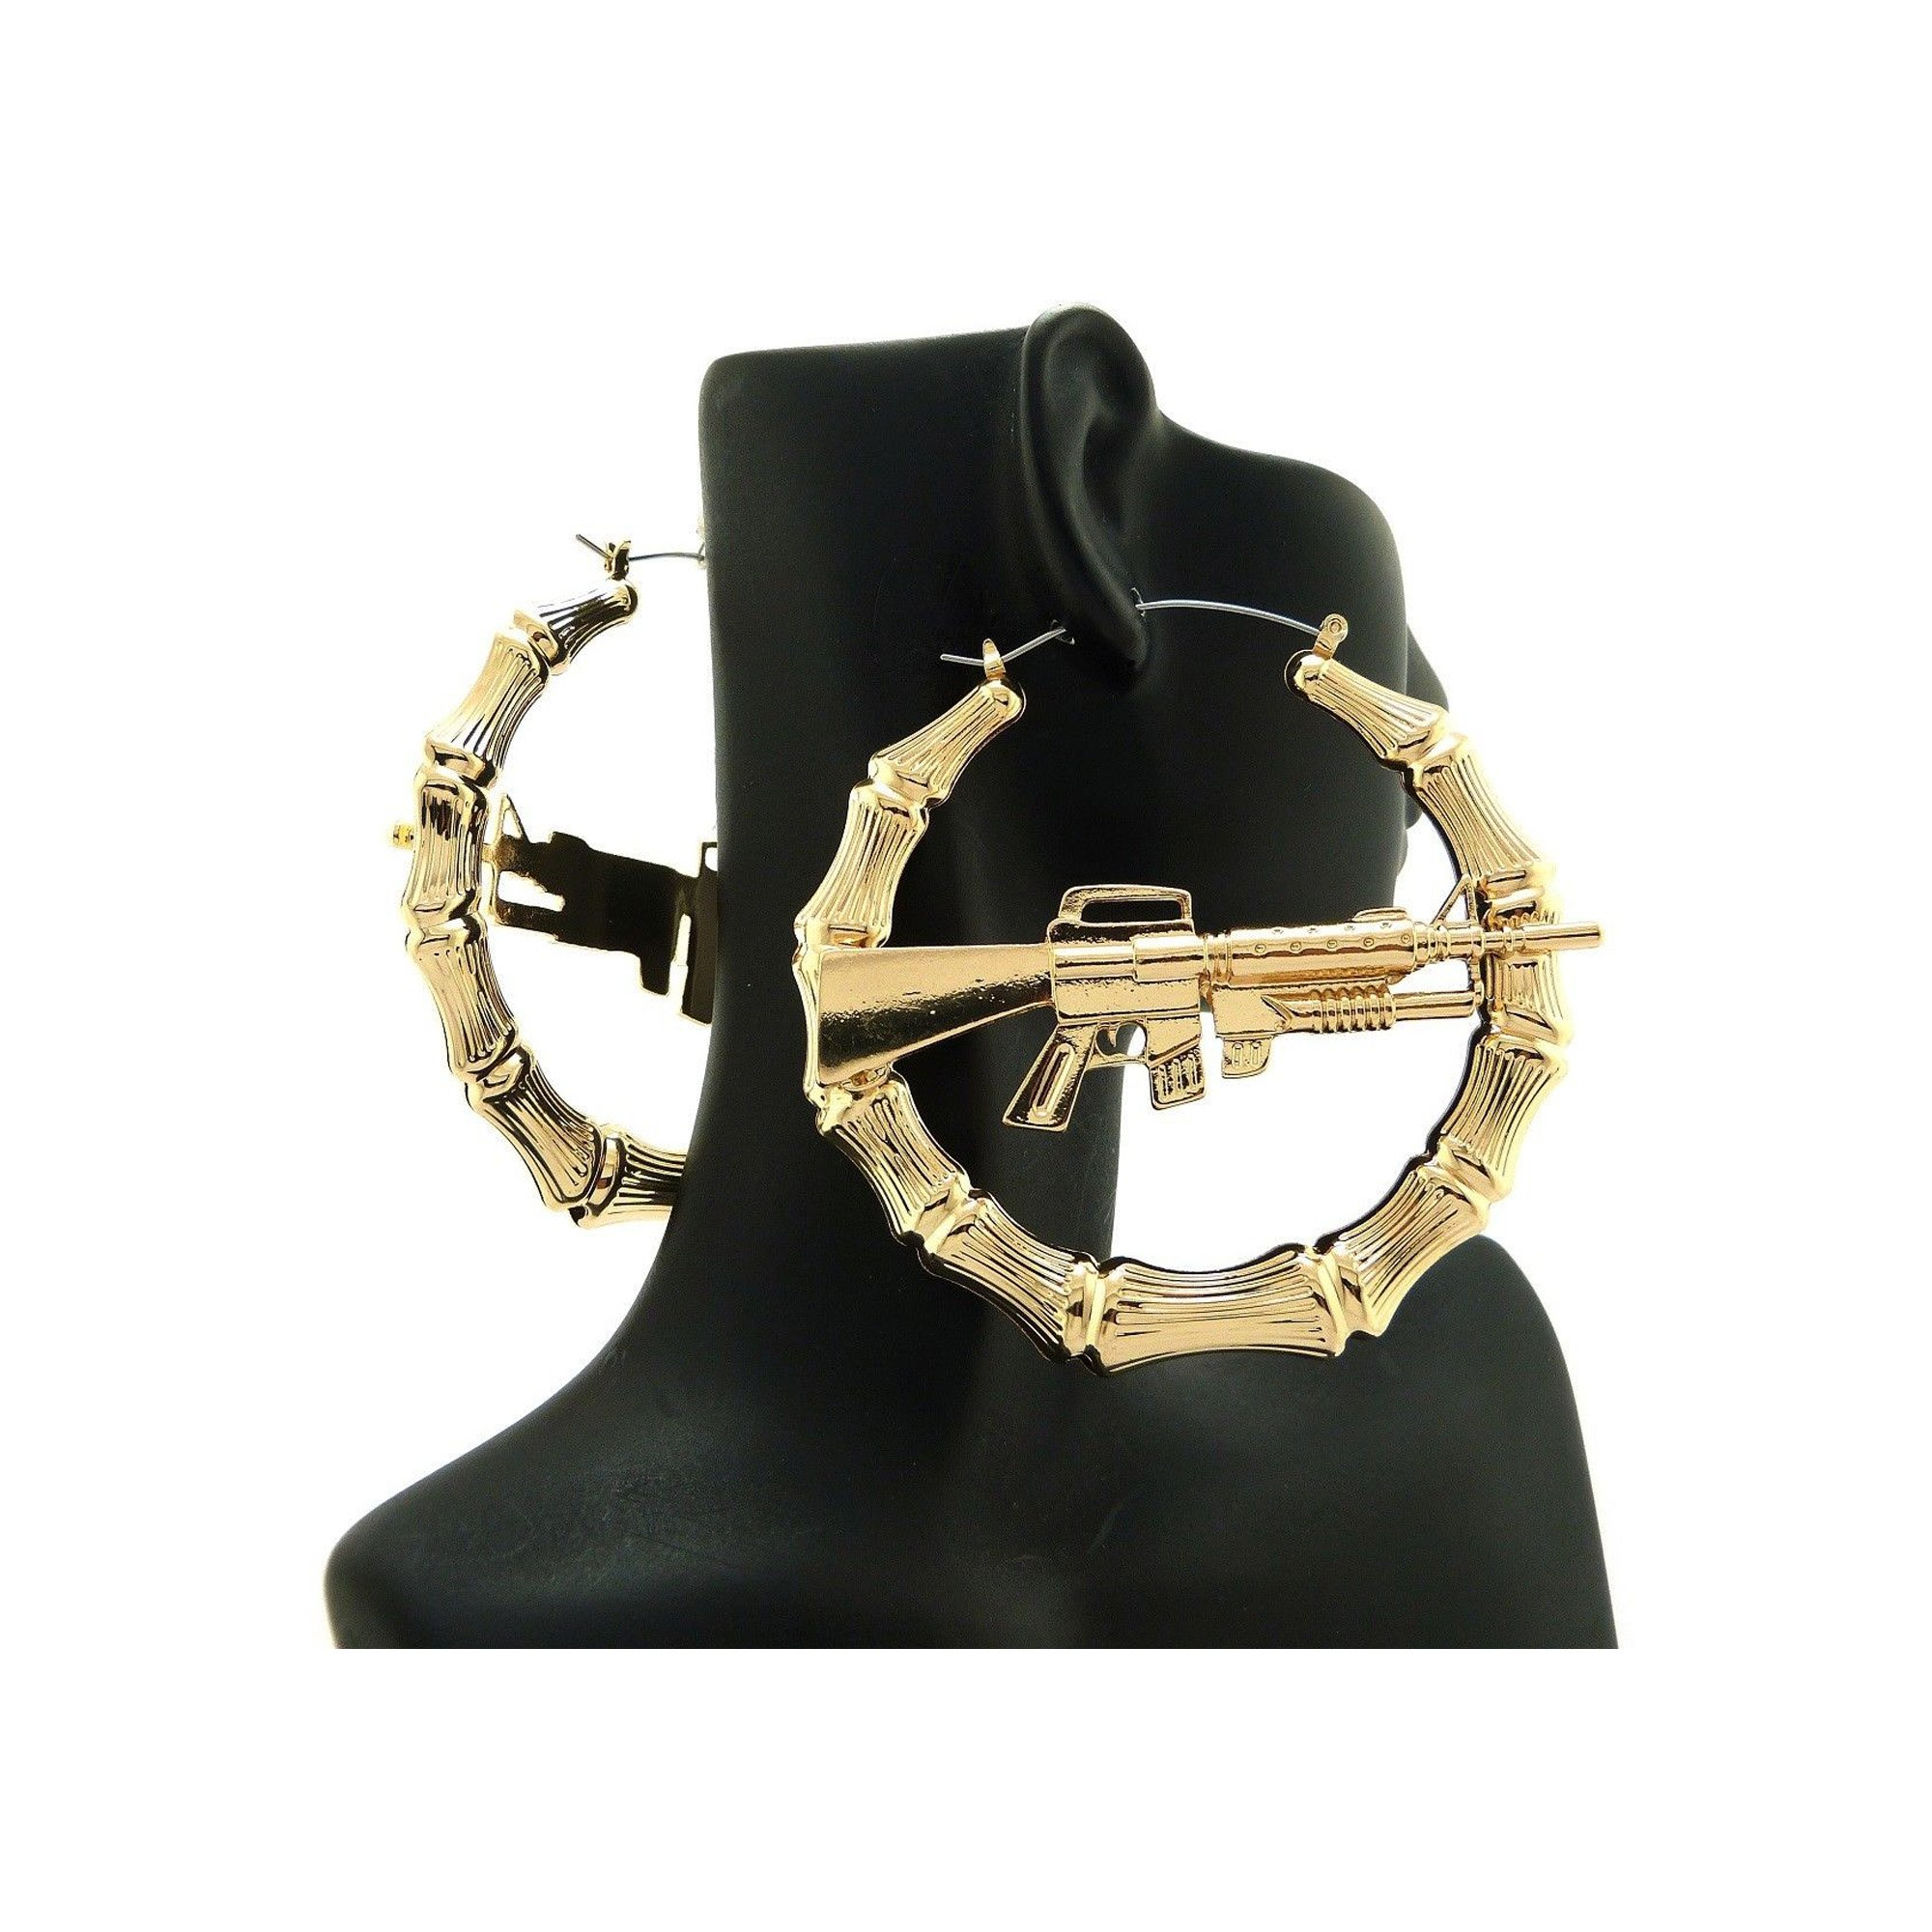 New Celebrity Style 'MACHINE GUN' 3'' Hollow Bamboo Hoop Pincatch Earring XE1122G